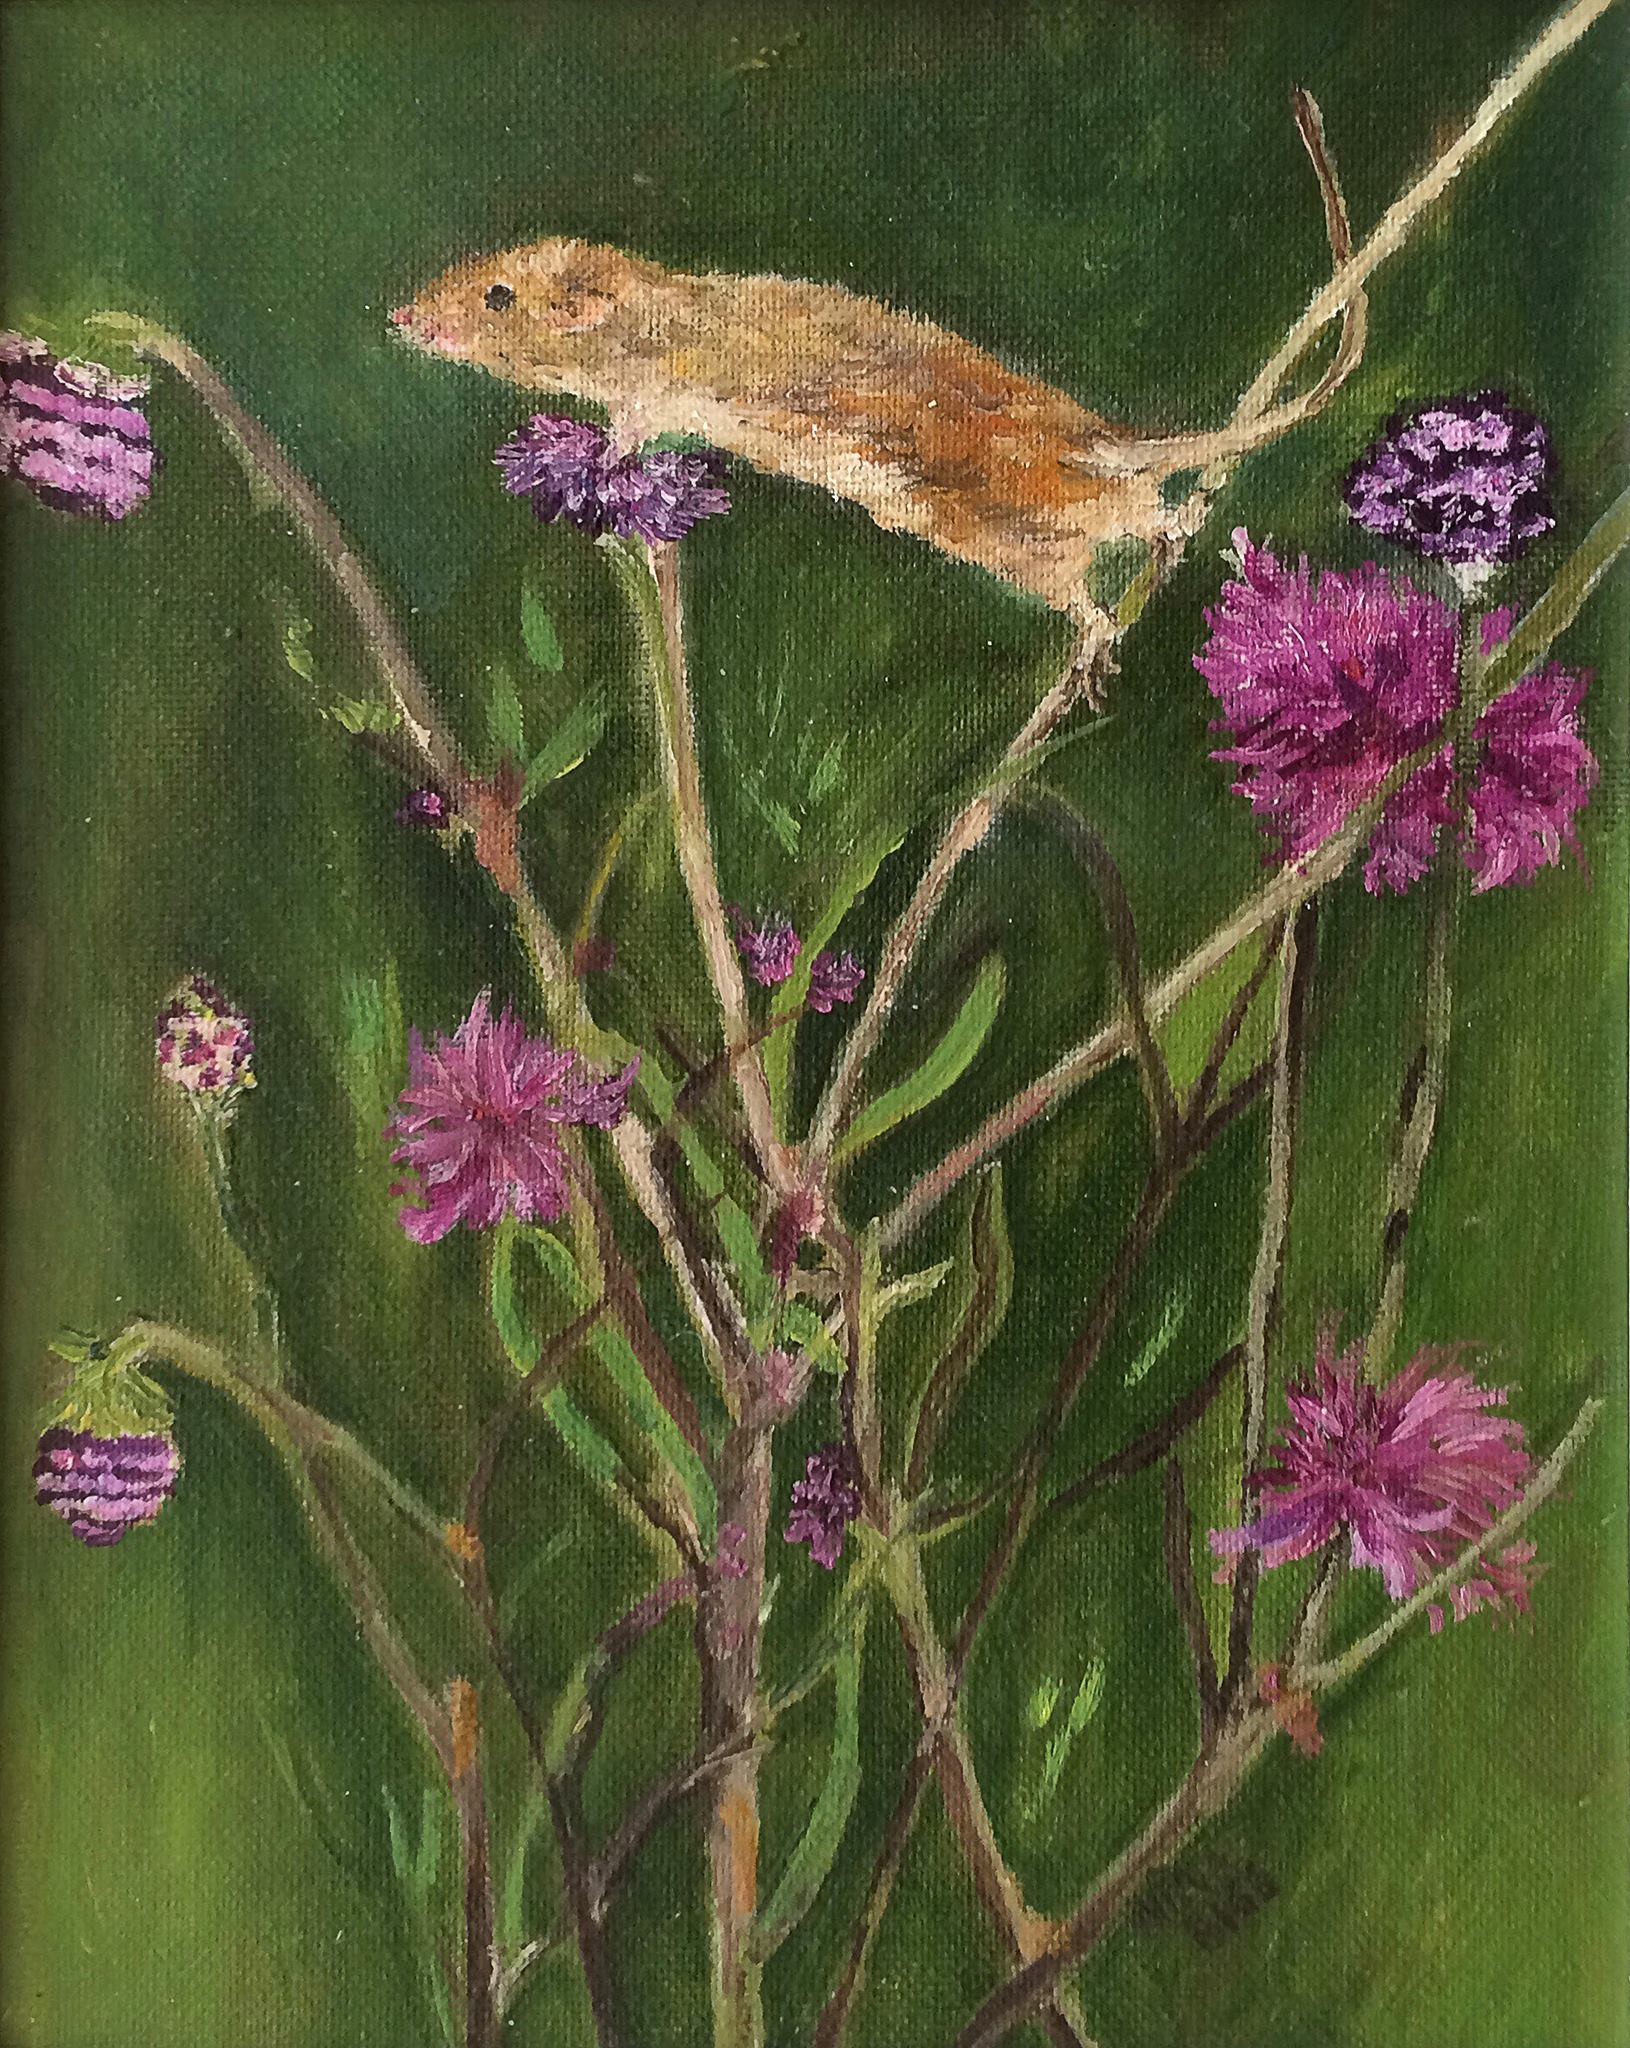 Harvest Mouse by Nina Bigg